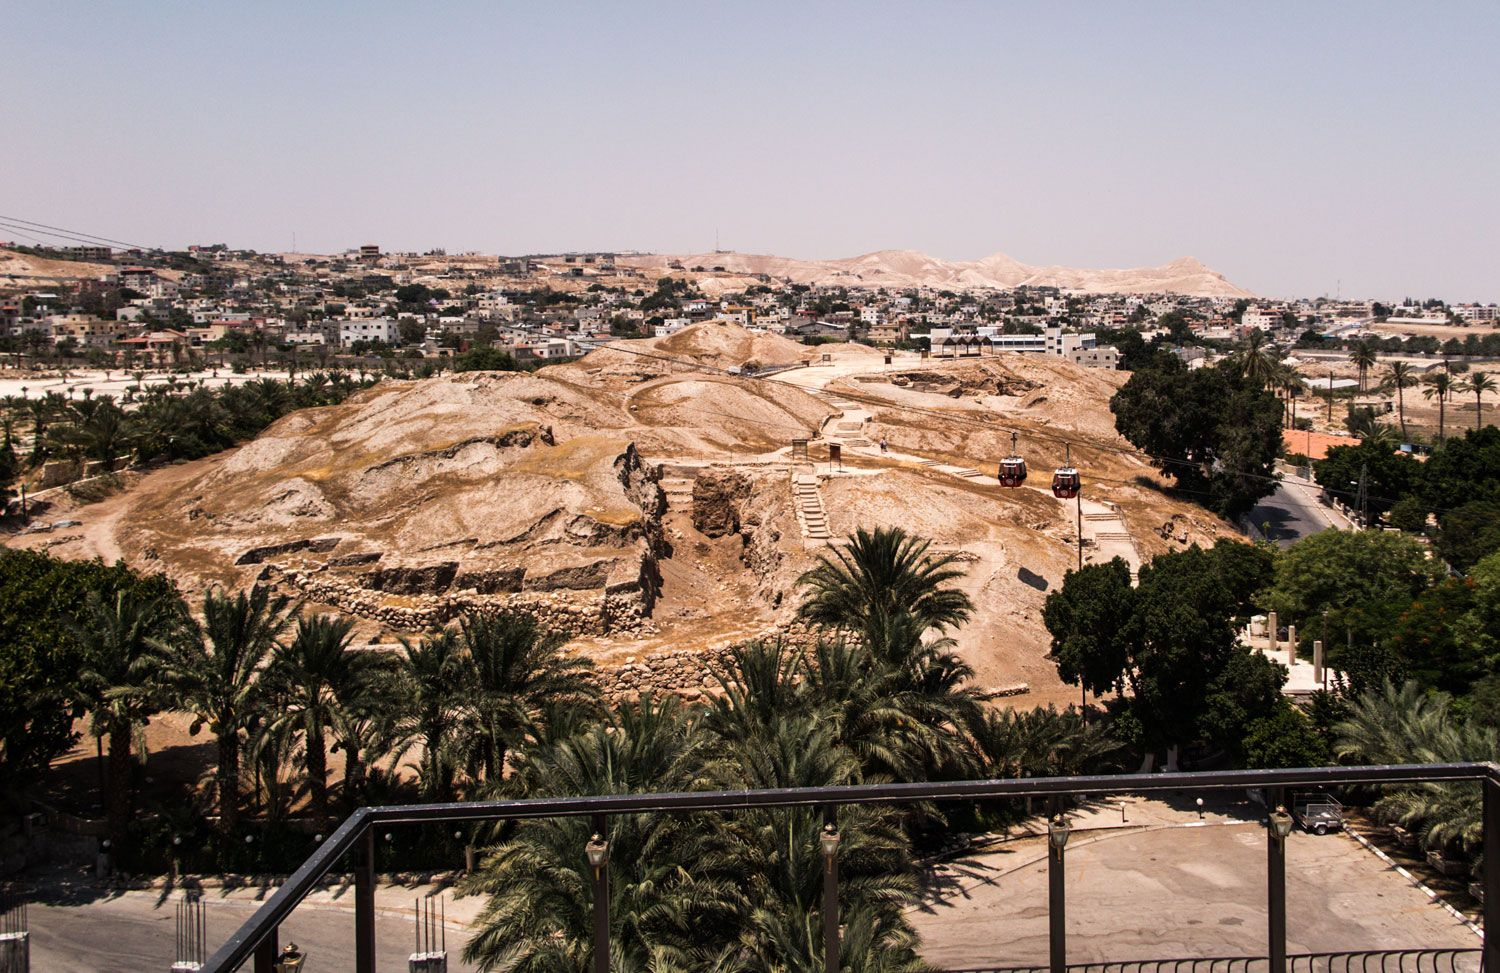 The old town of Jericho